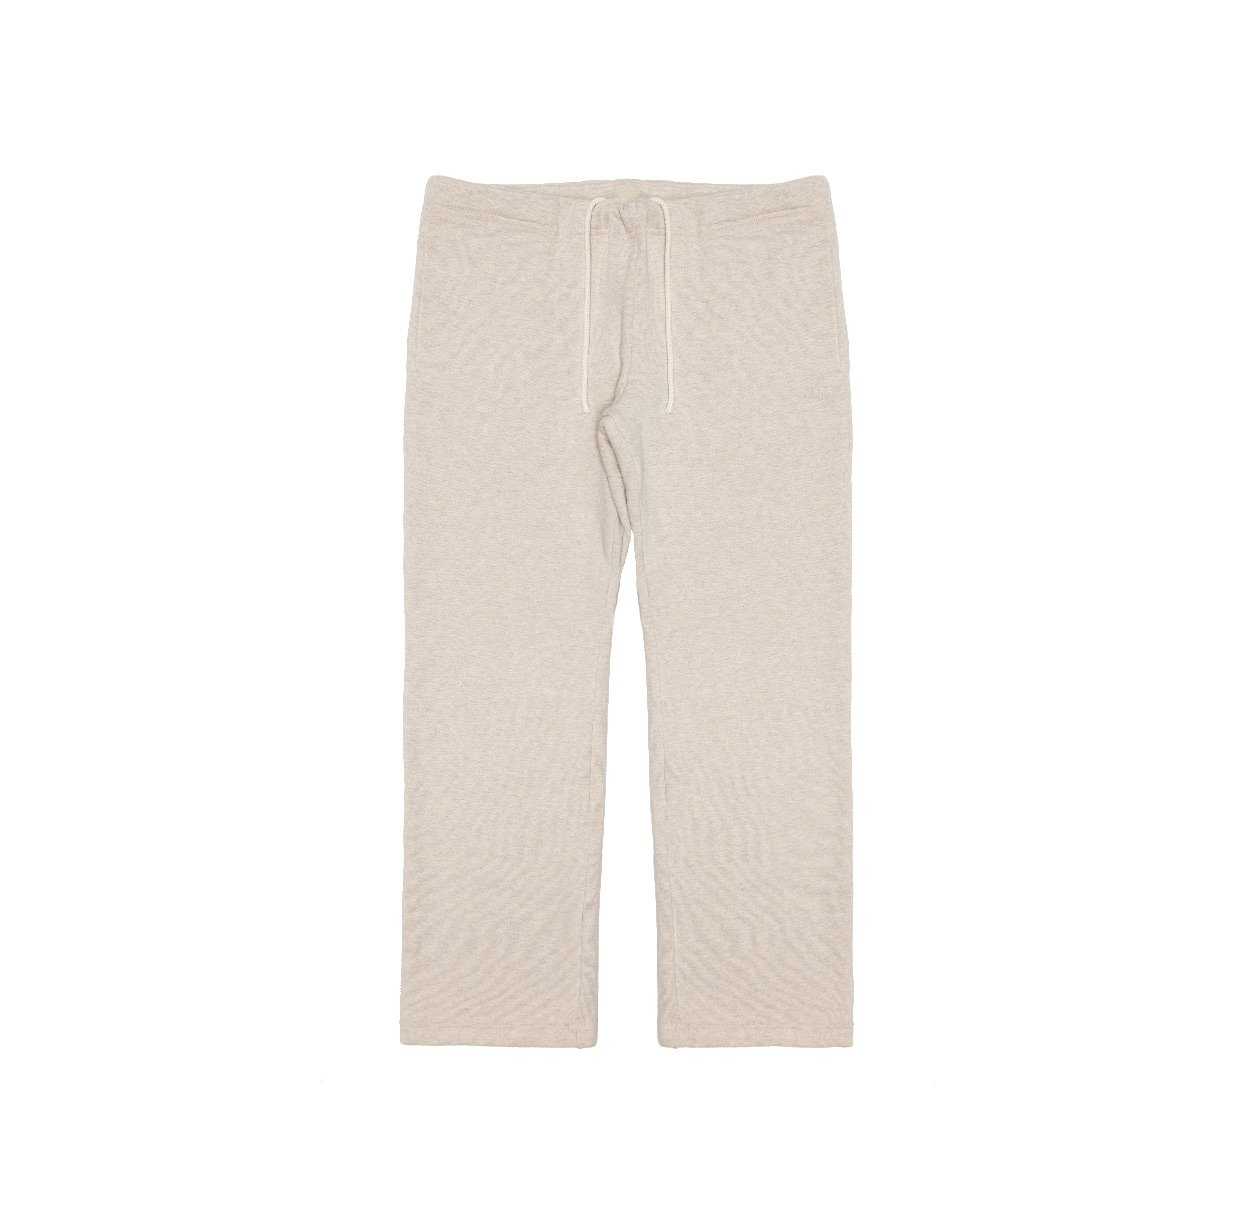 STRAIGHT LEG SWEAT PANTS (OATMEAL) by Cherry, available on cherryla.com for $200 Kendall Jenner Pants Exact Product